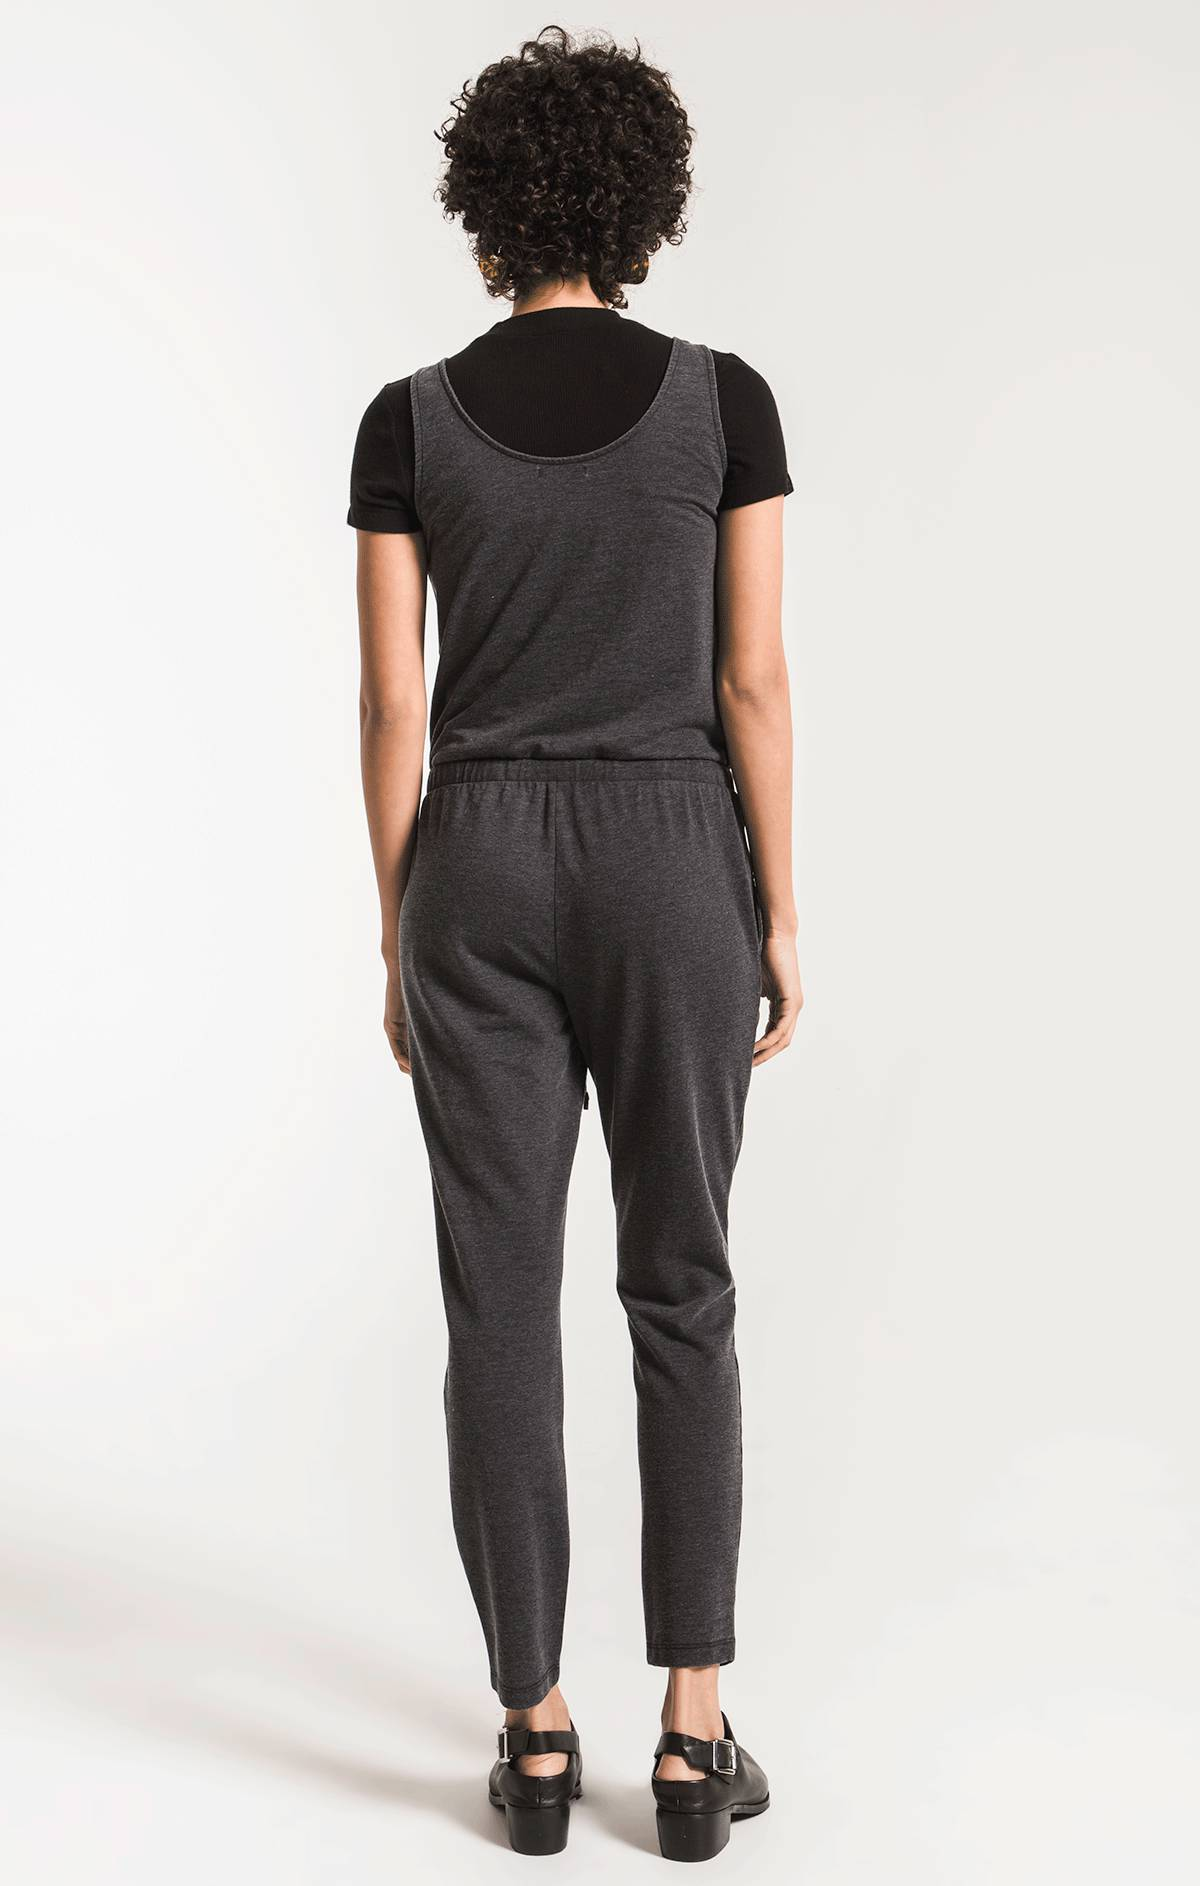 Pants The Utility Jumpsuit Black